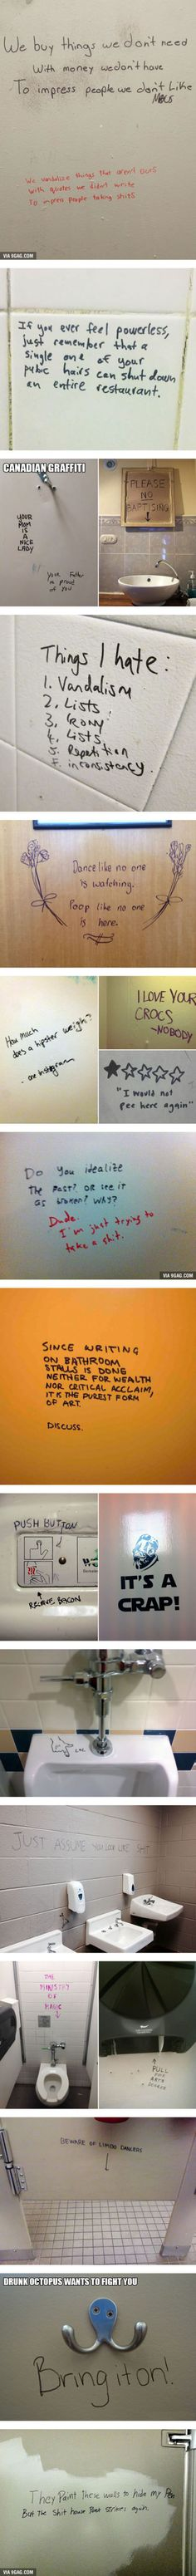 Brilliant Toilet Graffiti - They paint this wall to hide my pen, but the shit house poet strikes again